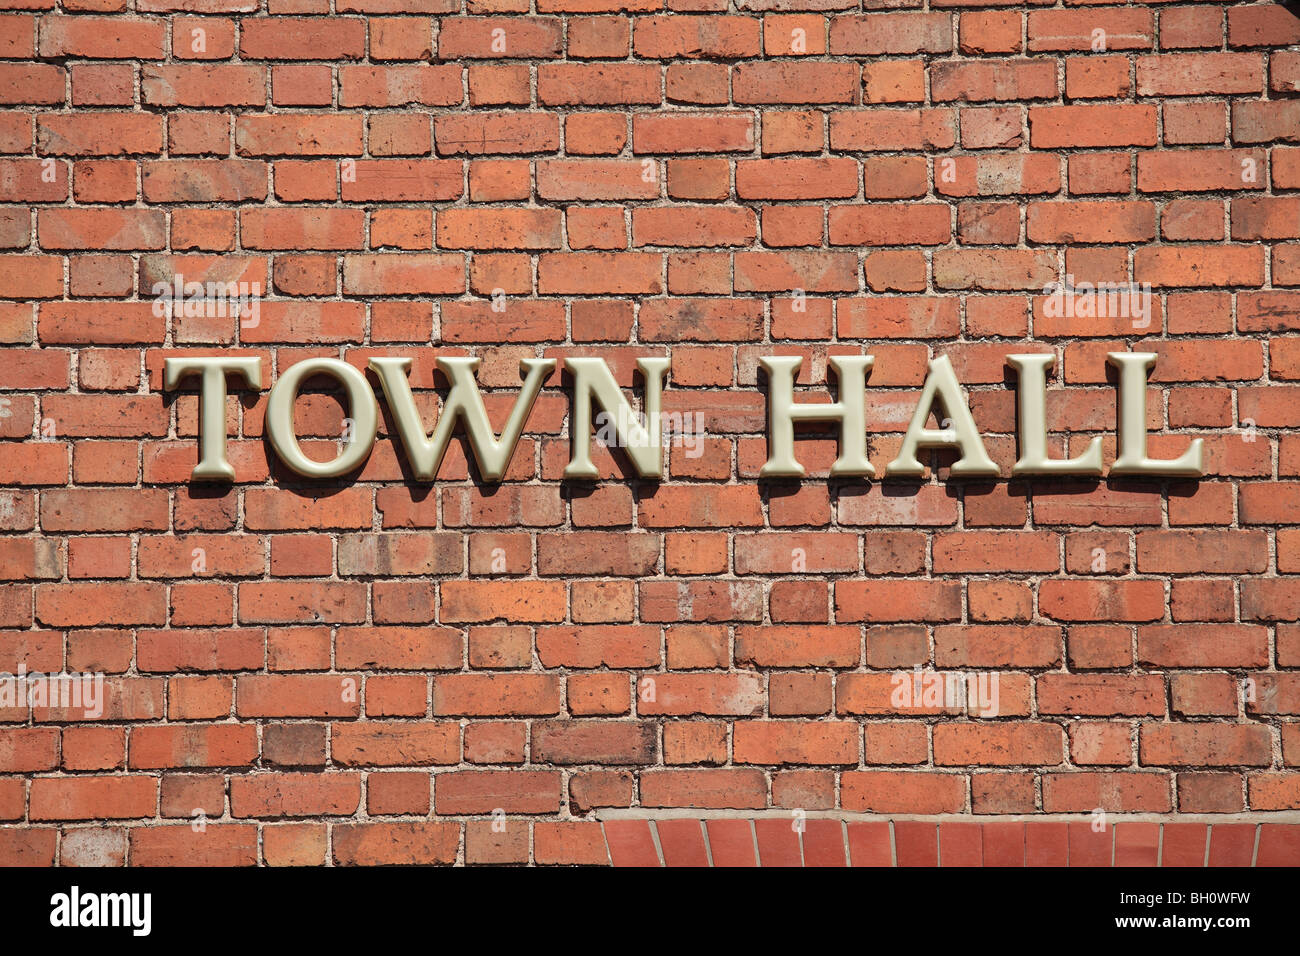 Town Hall sign in gold capital letters on a brick wall - Stock Image